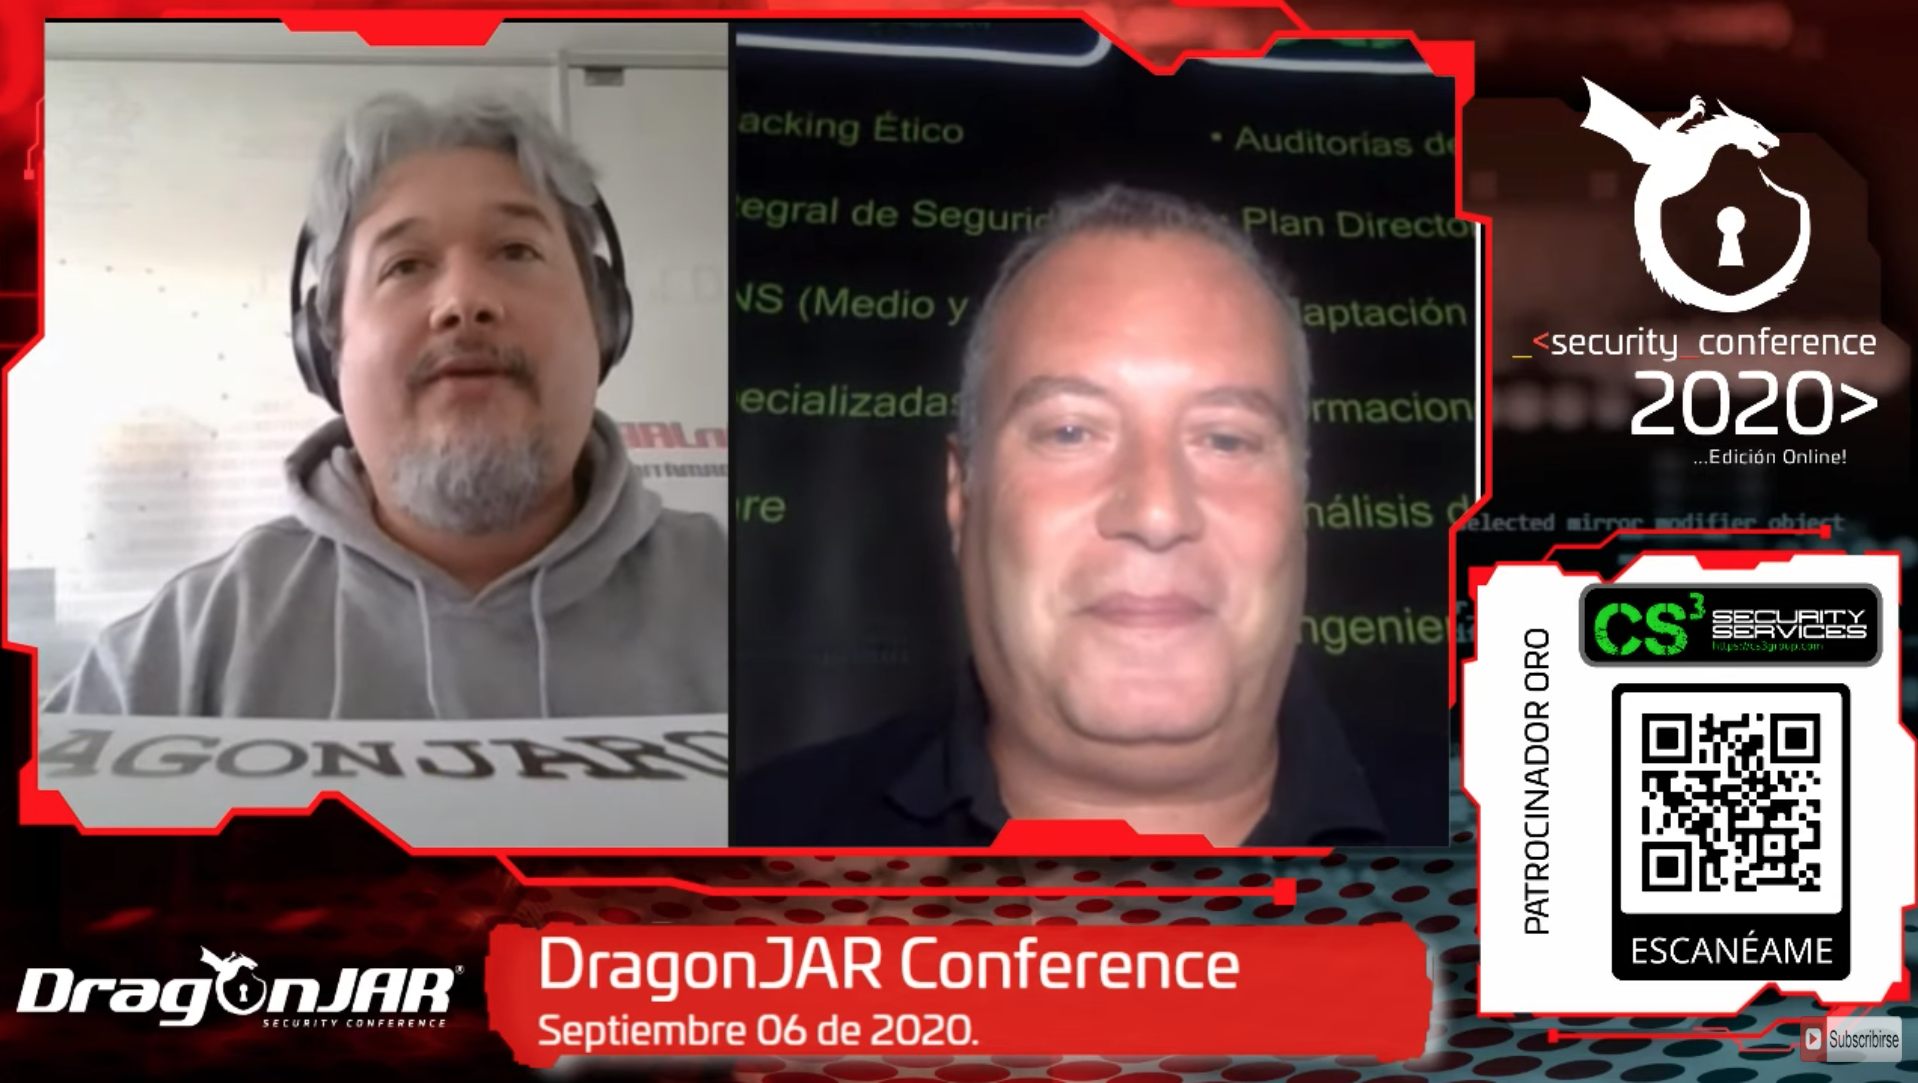 DragonJAR Security Conference 2020